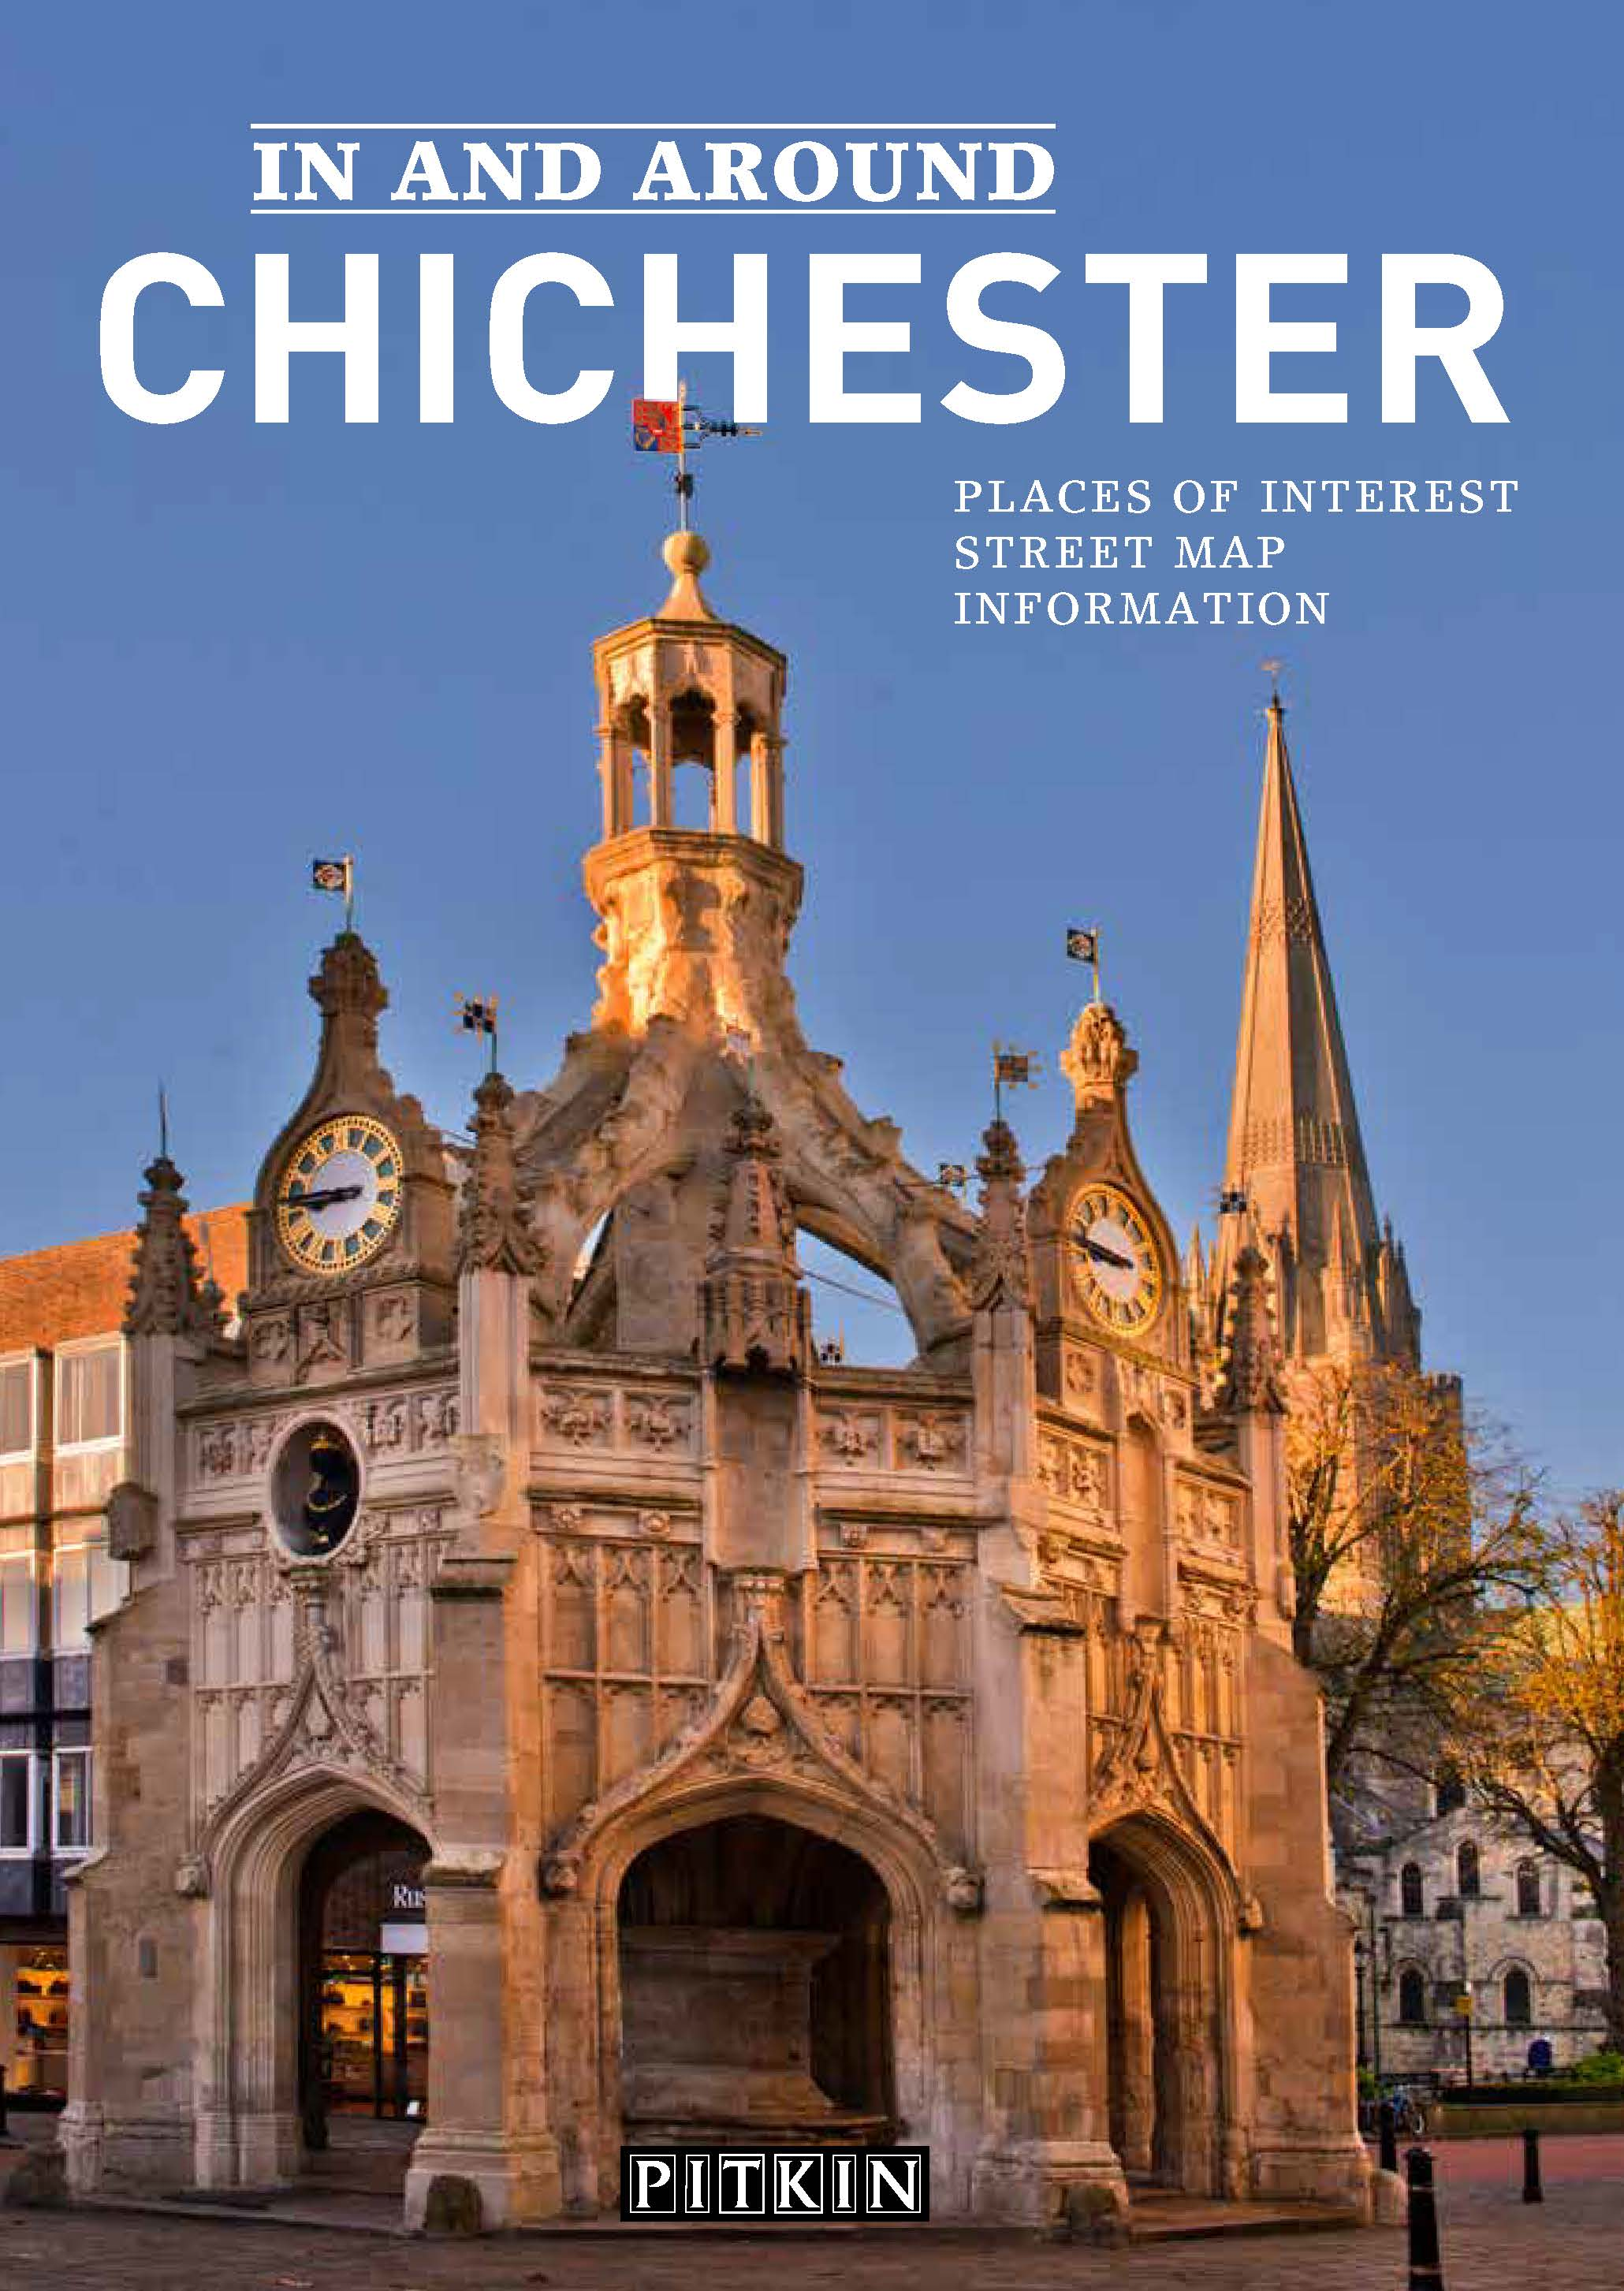 In and Around Chichester